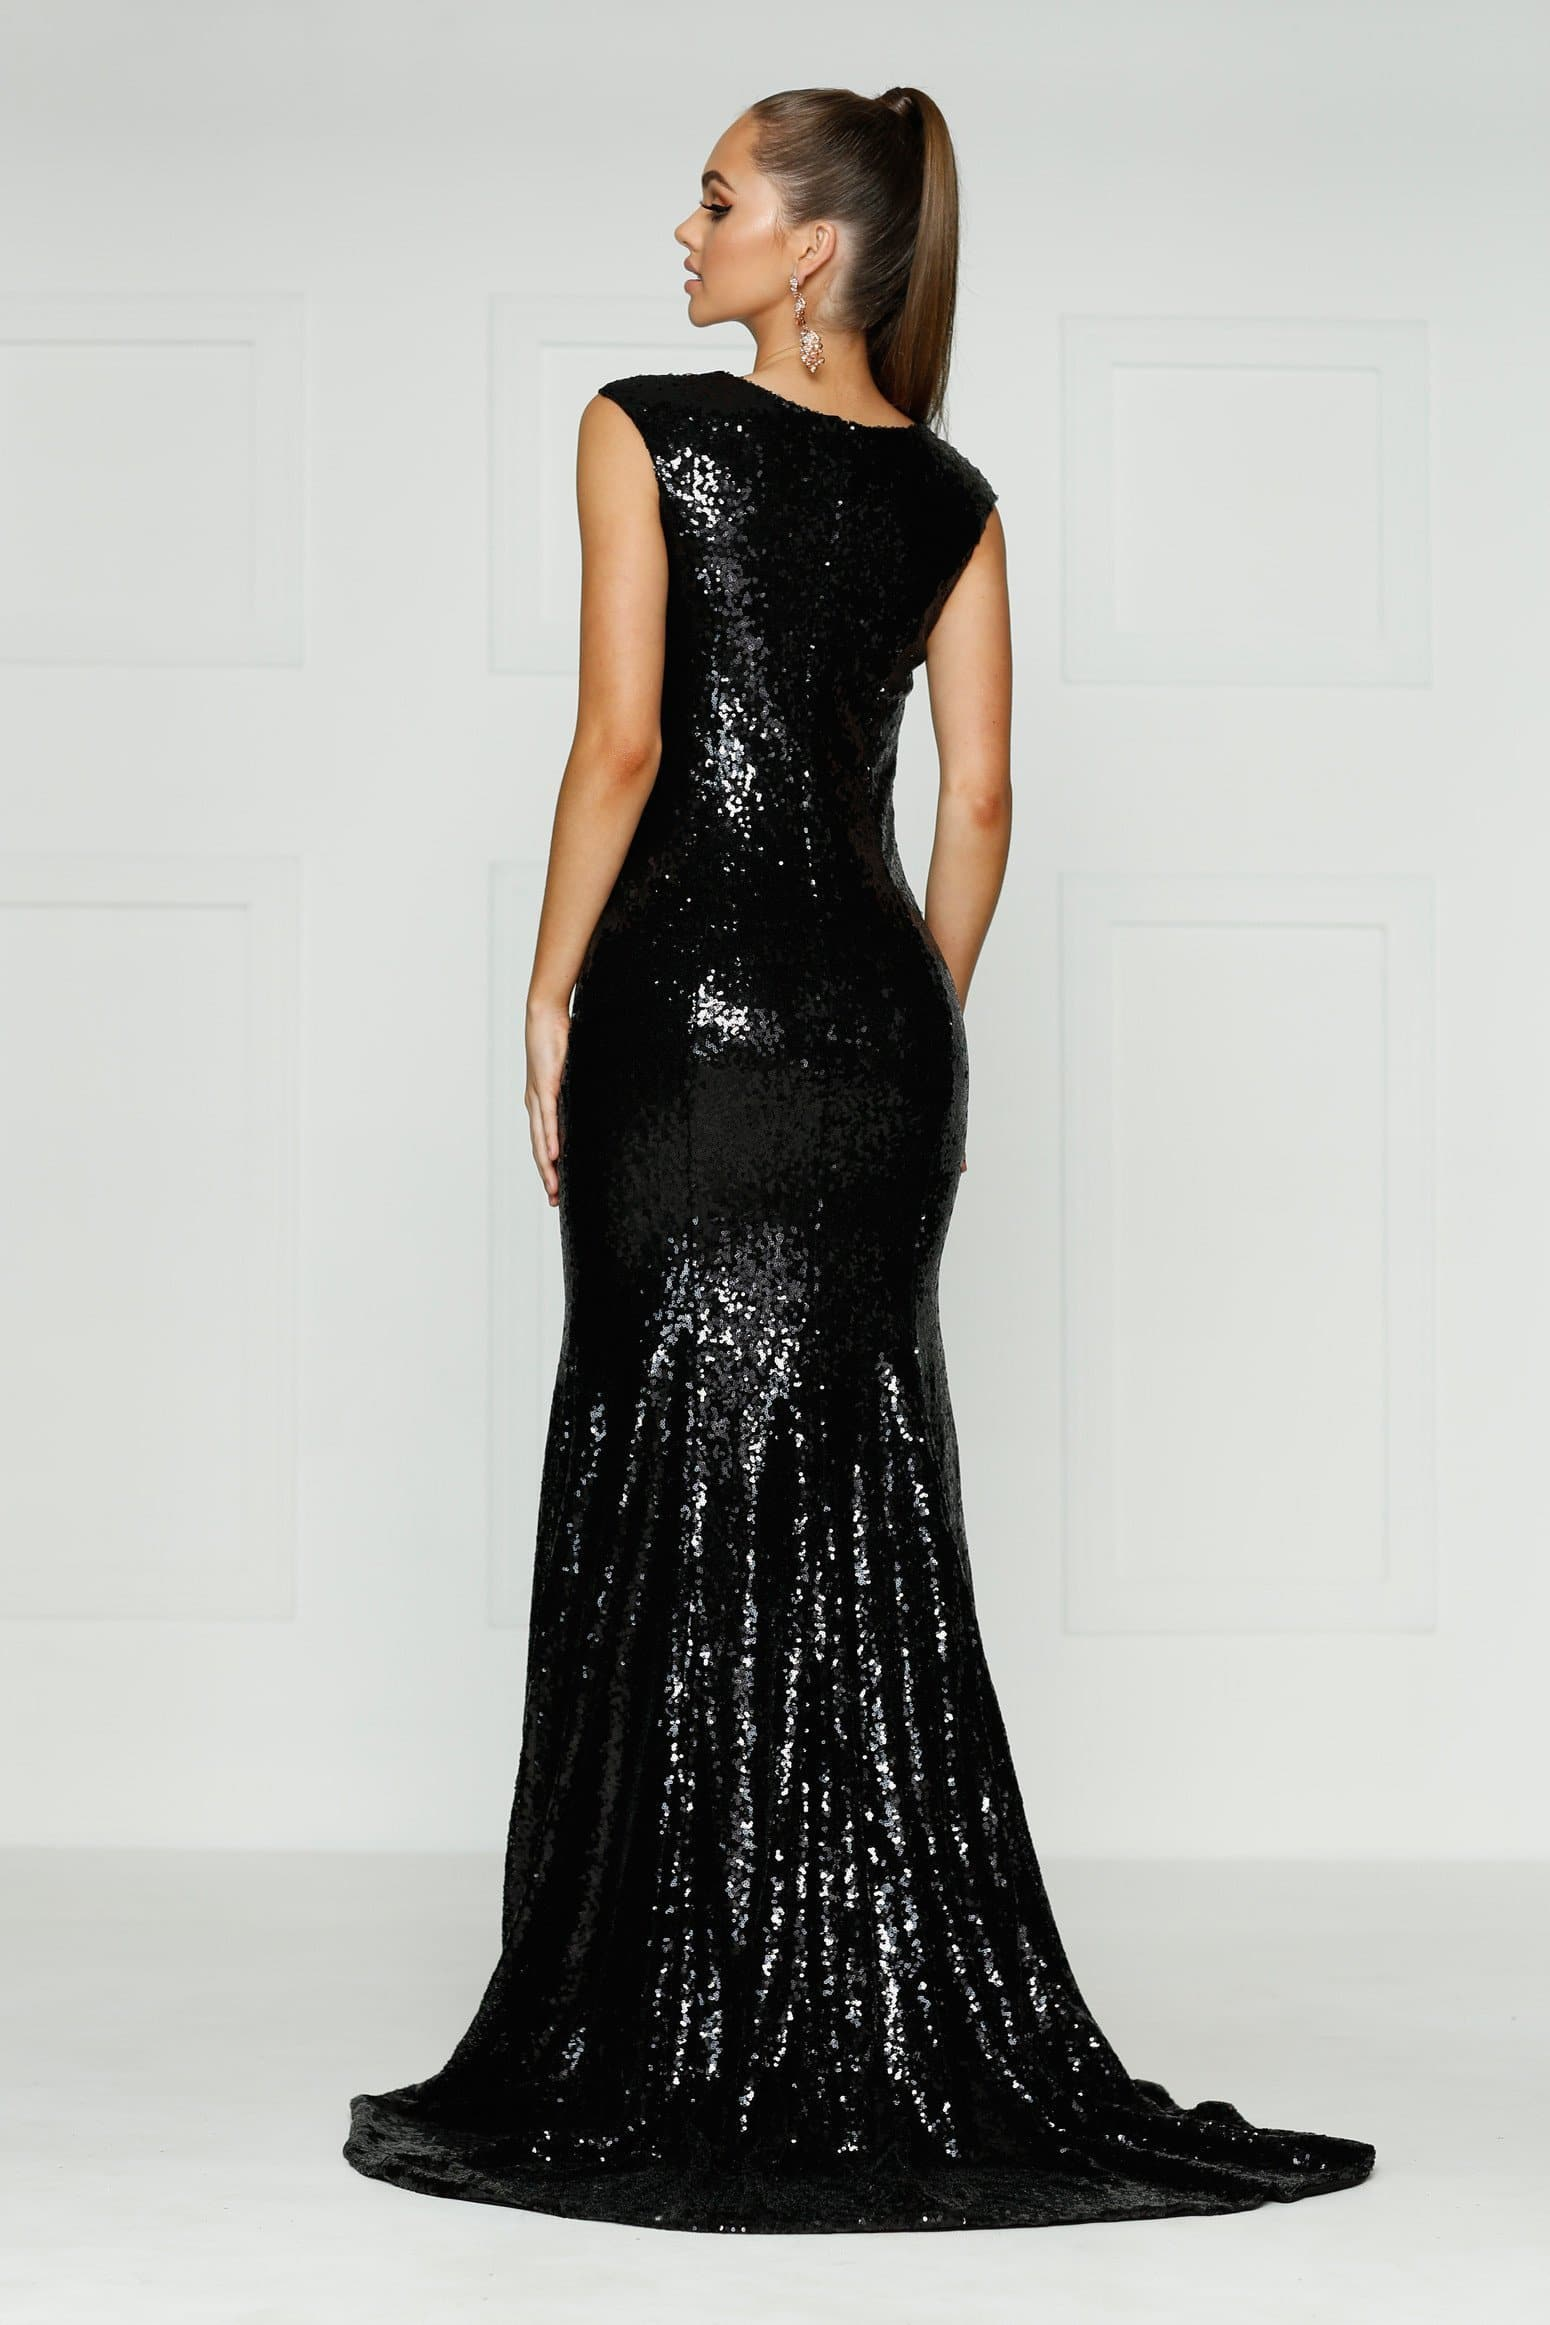 A&N Lila - Black Sequin Gown with High Neck and Side Slit